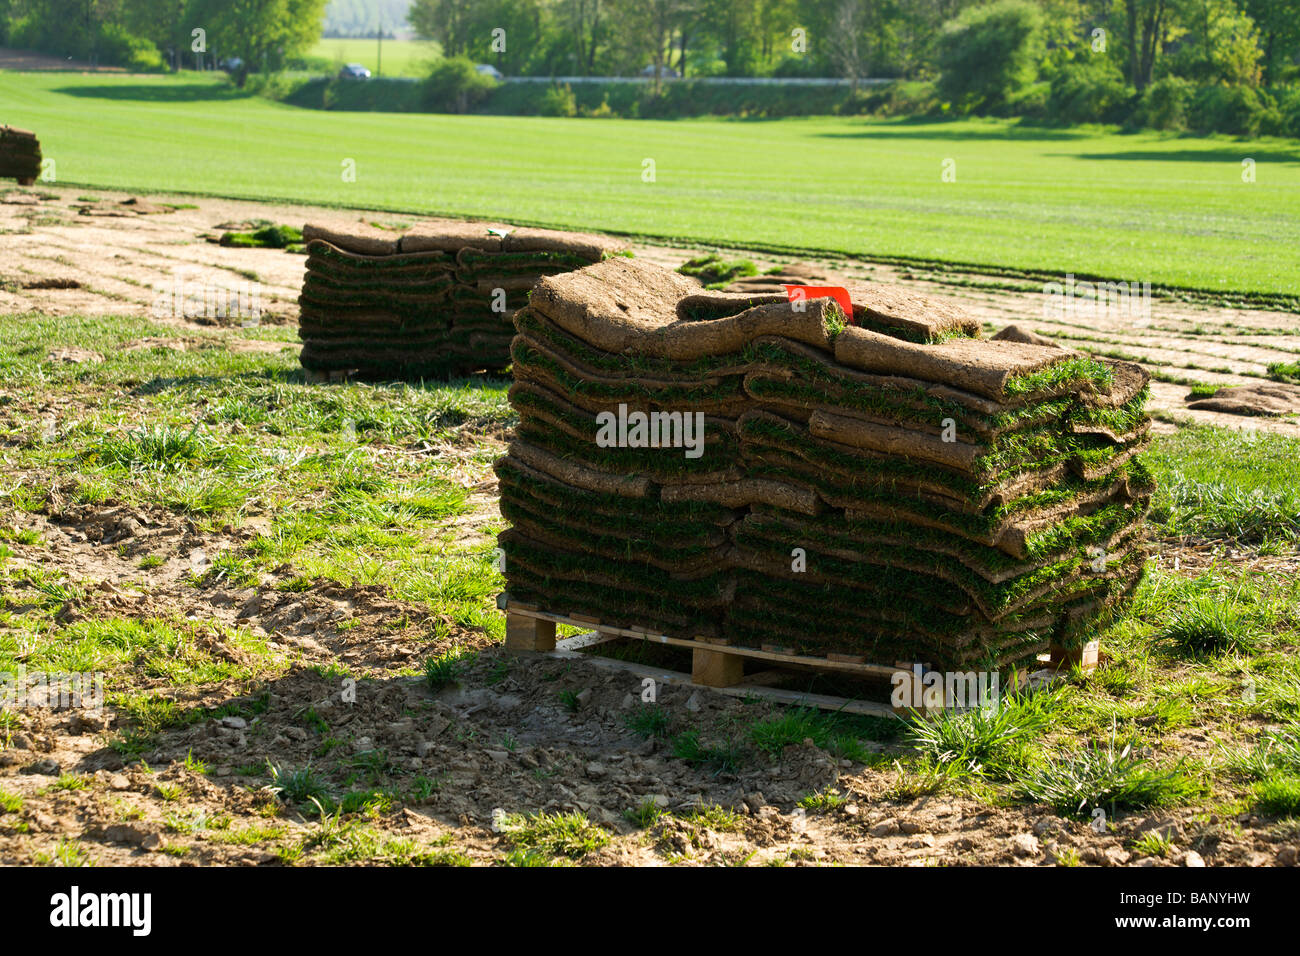 readymade lawn, folded sods on pallet - Stock Image